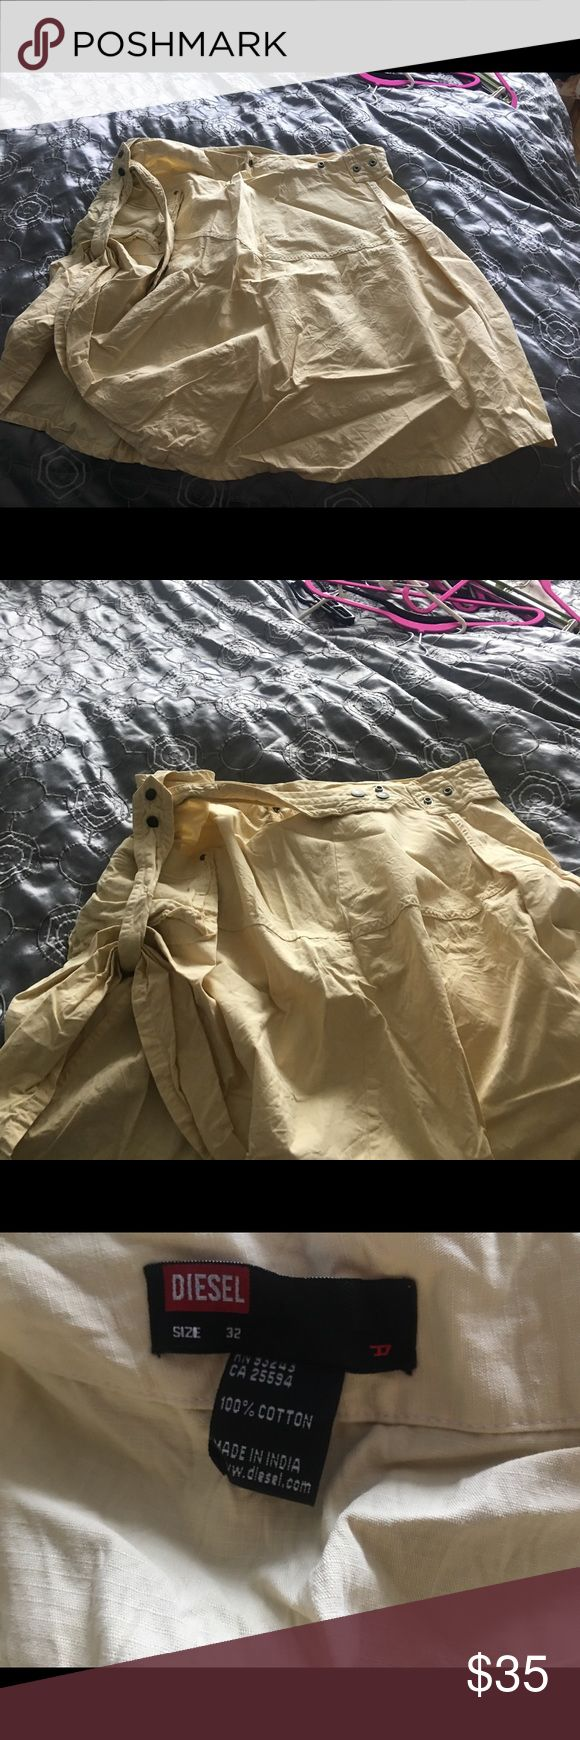 Diesel Skirt pale yellow size 32 medium large Super cute diesel skirt!  Pale yellow.  Cotton. Bought it in Italy.  Never worn.  Goes to knees.  Cute rushing in side.  Size 32 Italian.  I would say it is a medium to large.  Adorable!! Diesel Skirts Midi